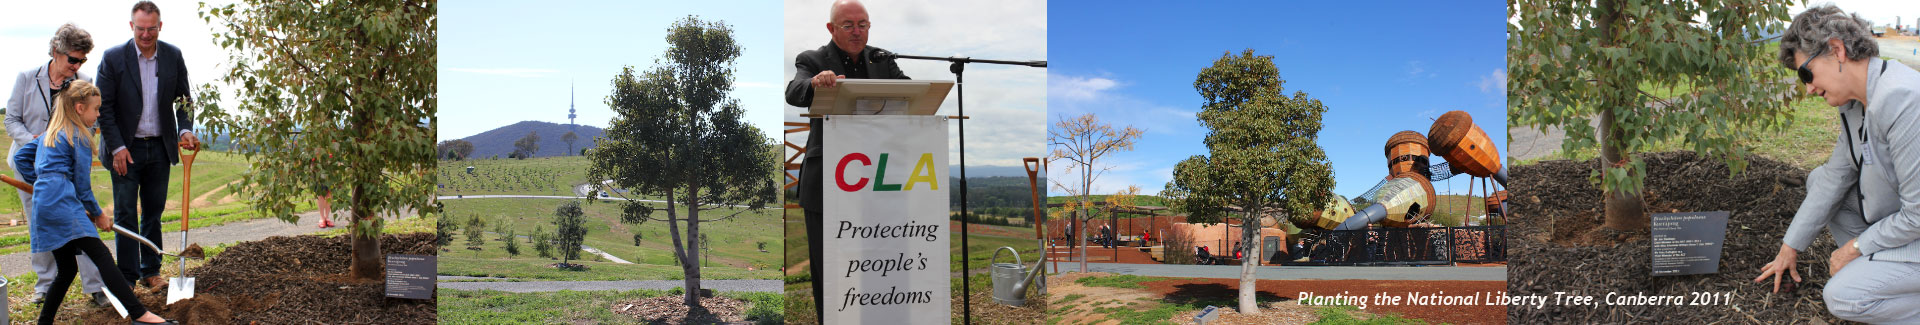 May '10 Newsletter:Tasmania holds freshhope for human rights